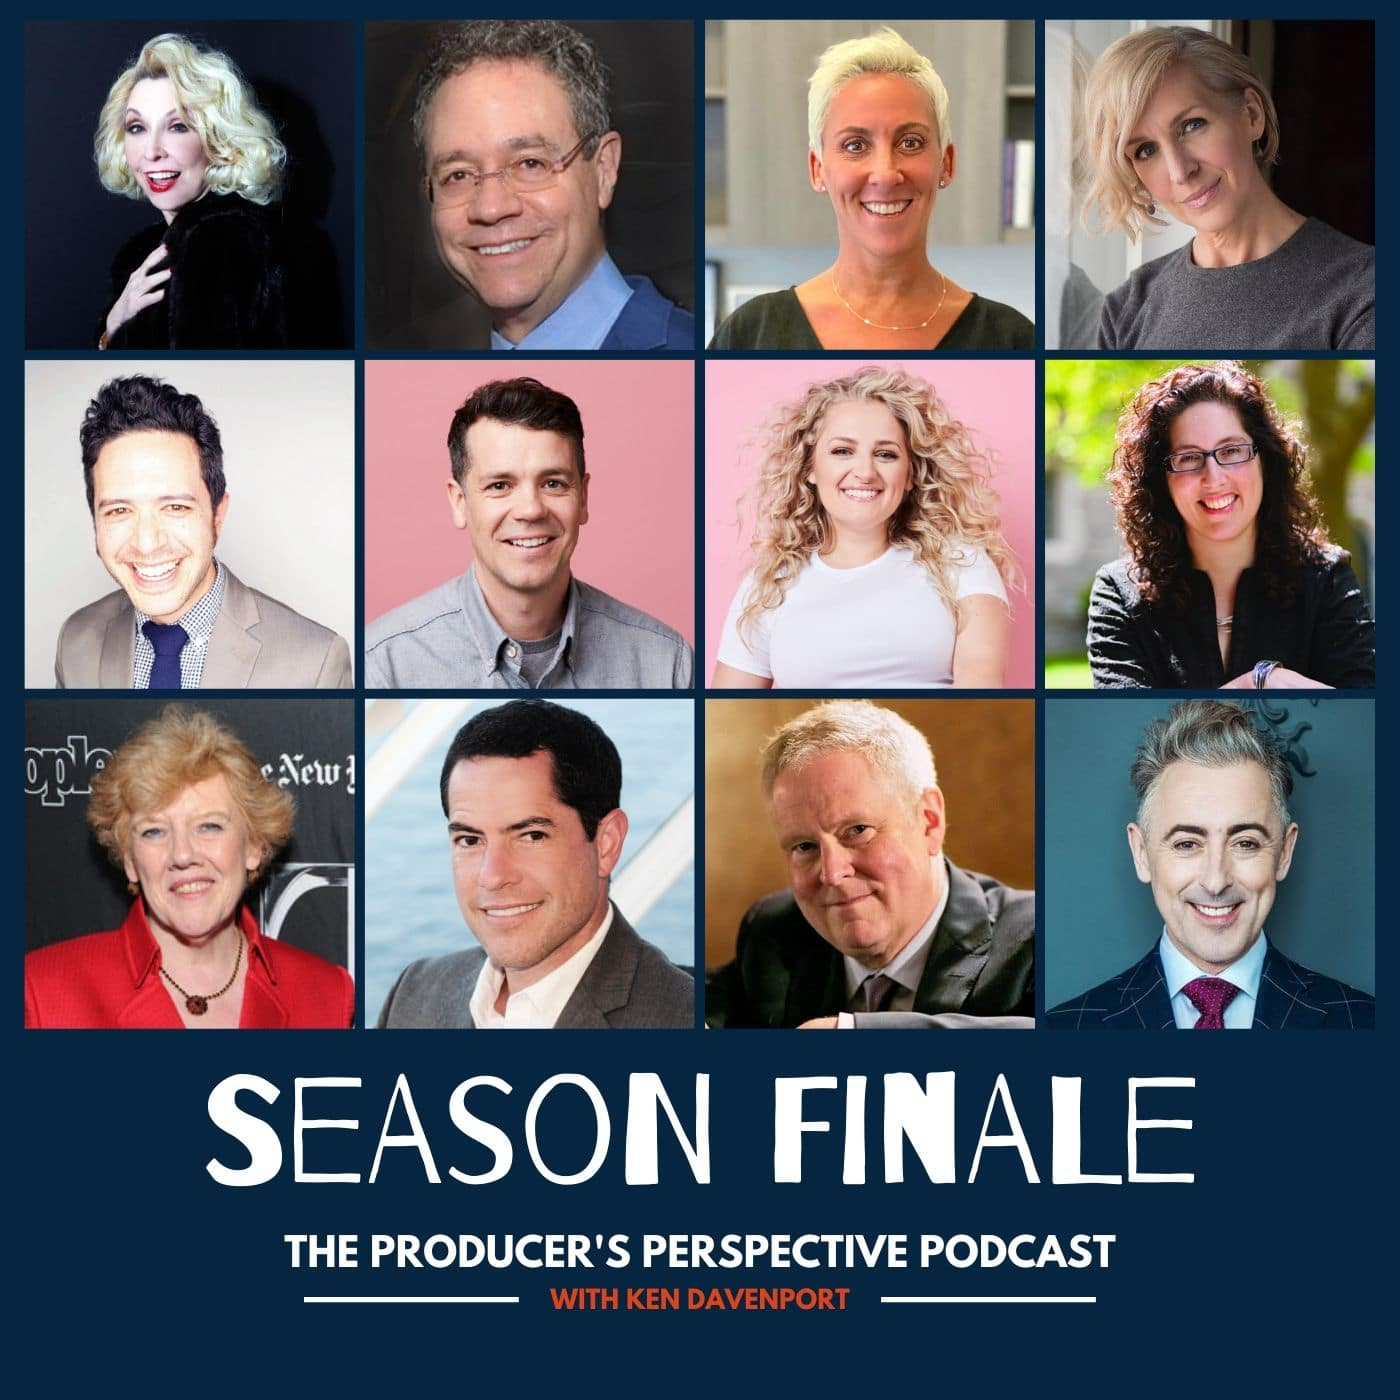 The Producer's Perspective Episode 205 Season Finale